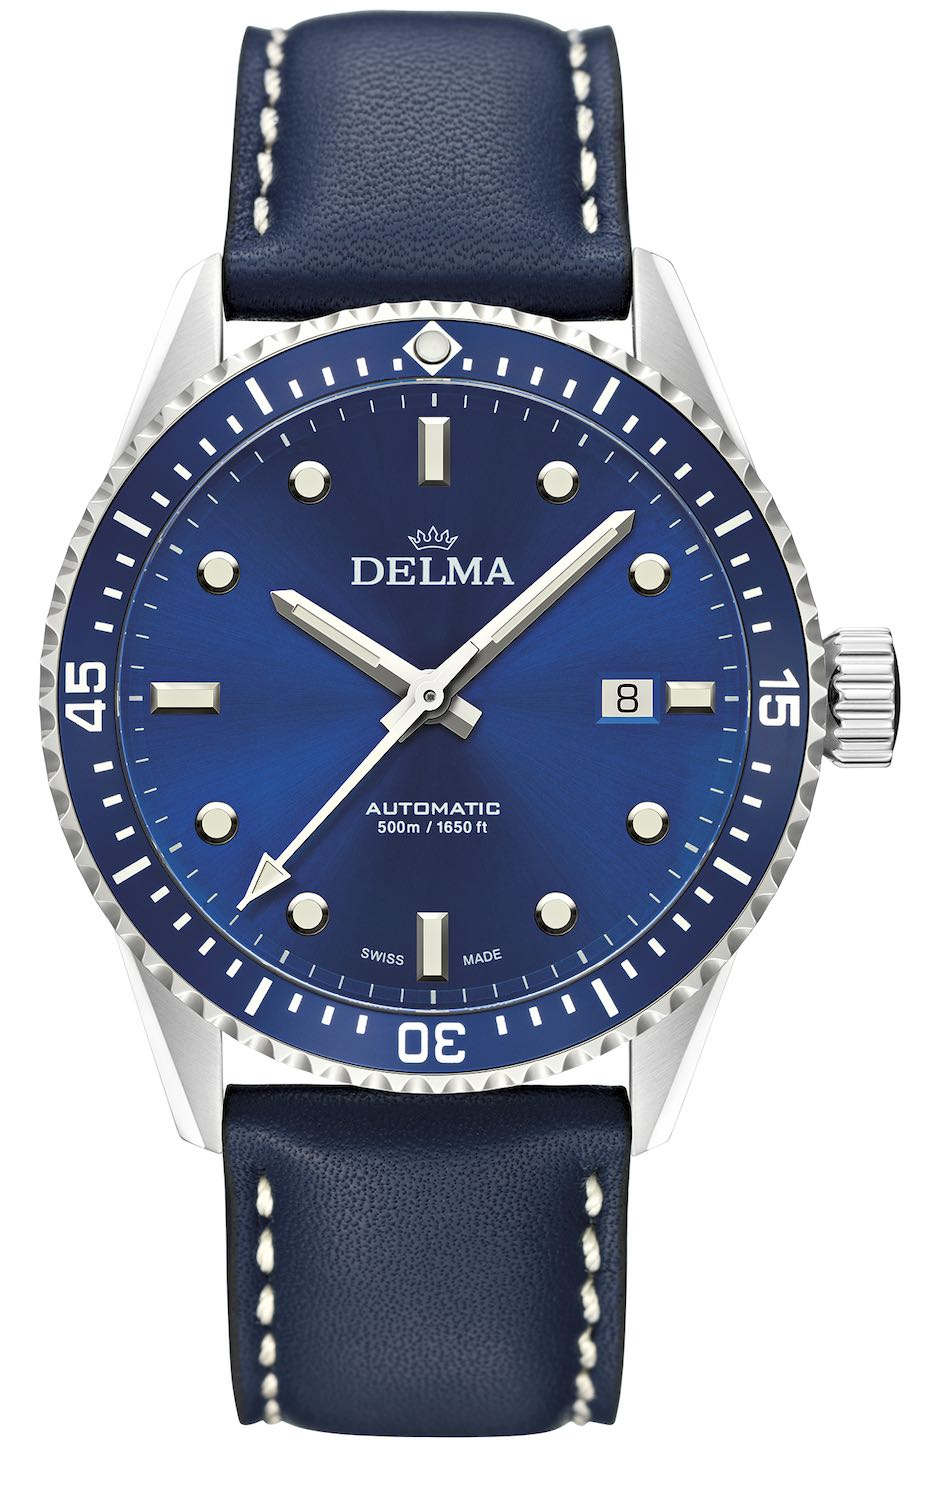 Delma Cayman Automatic - Value Proposition Diver - 6